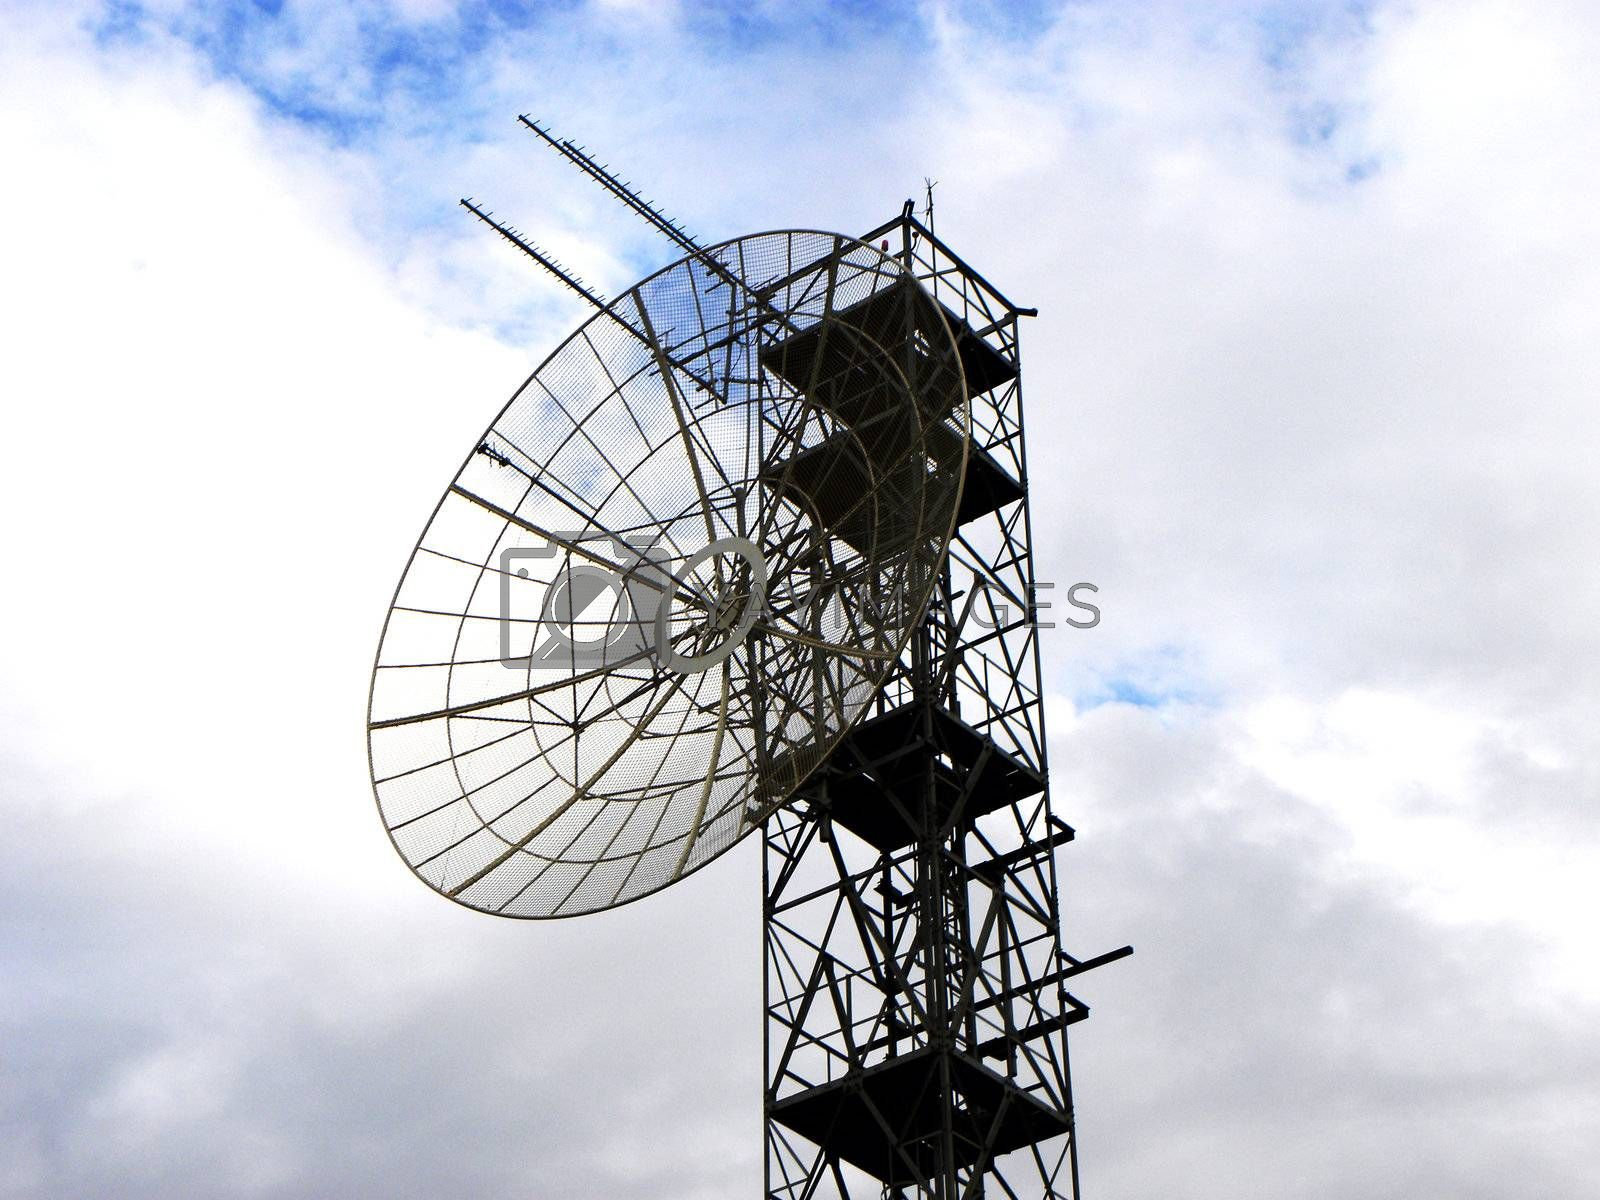 contrast of light in the image of antenna pointing at the sky. Represents the technology and the modern world and the Internet, cable television, cell phones and other